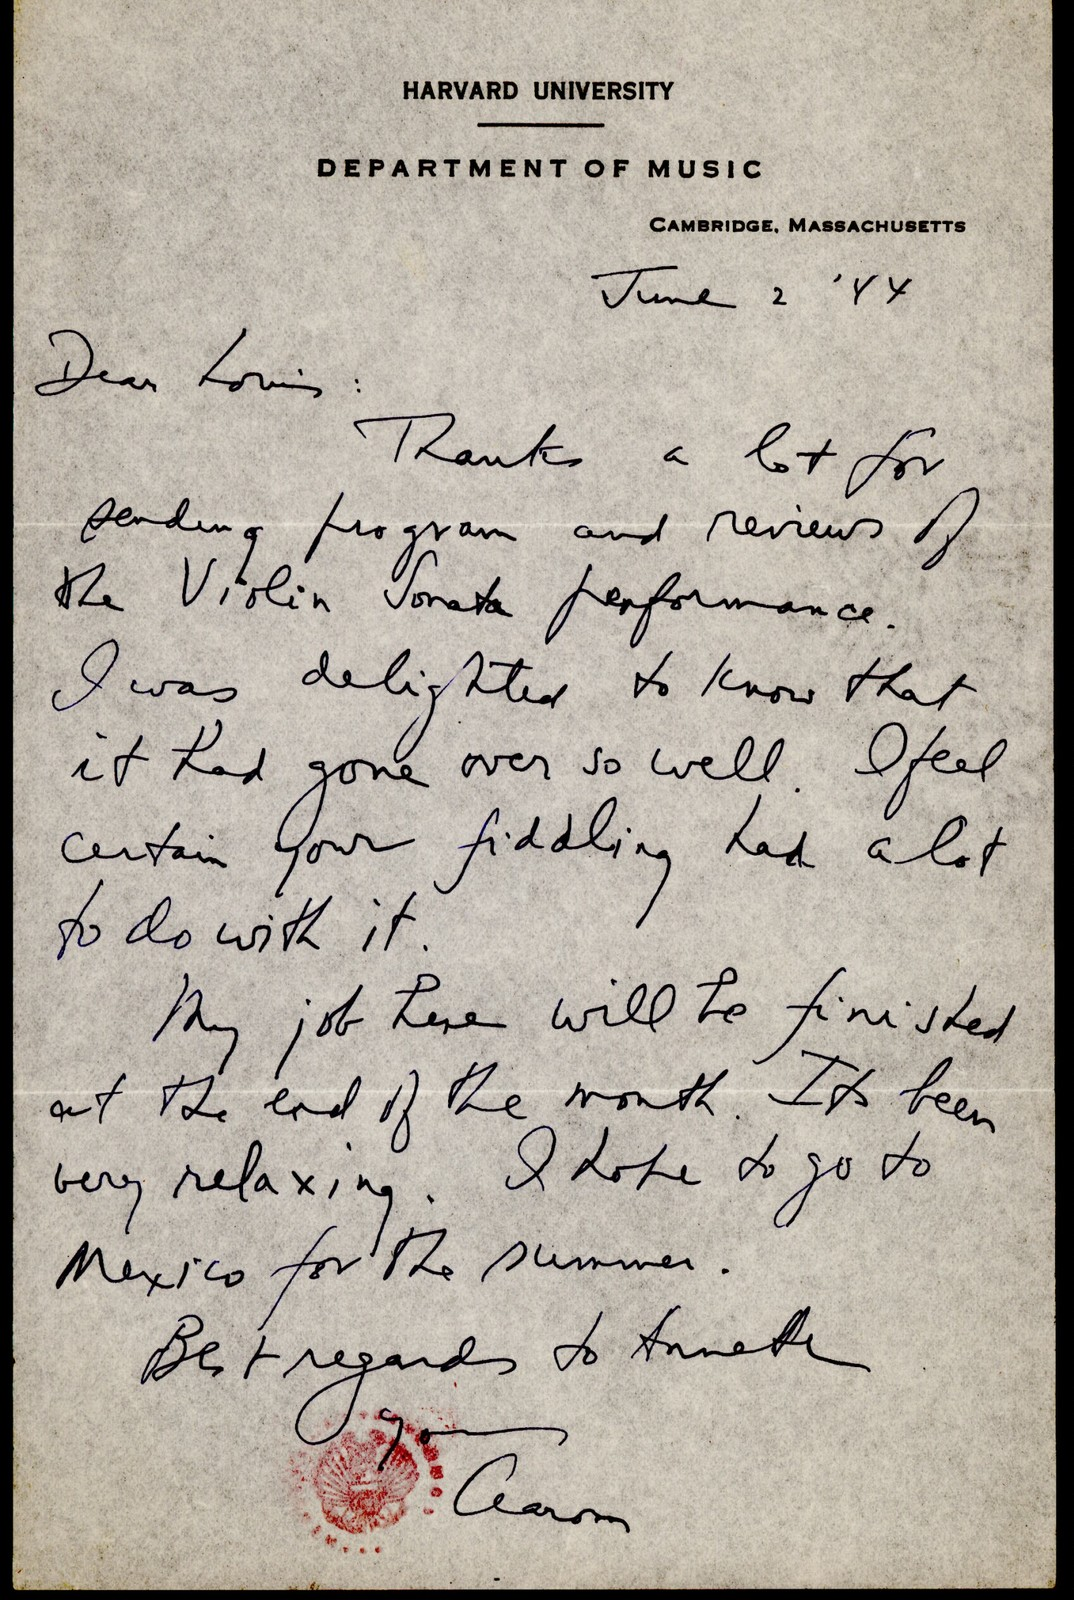 Letter from Aaron Copland to Louis Kaufman, June 2, 1944.